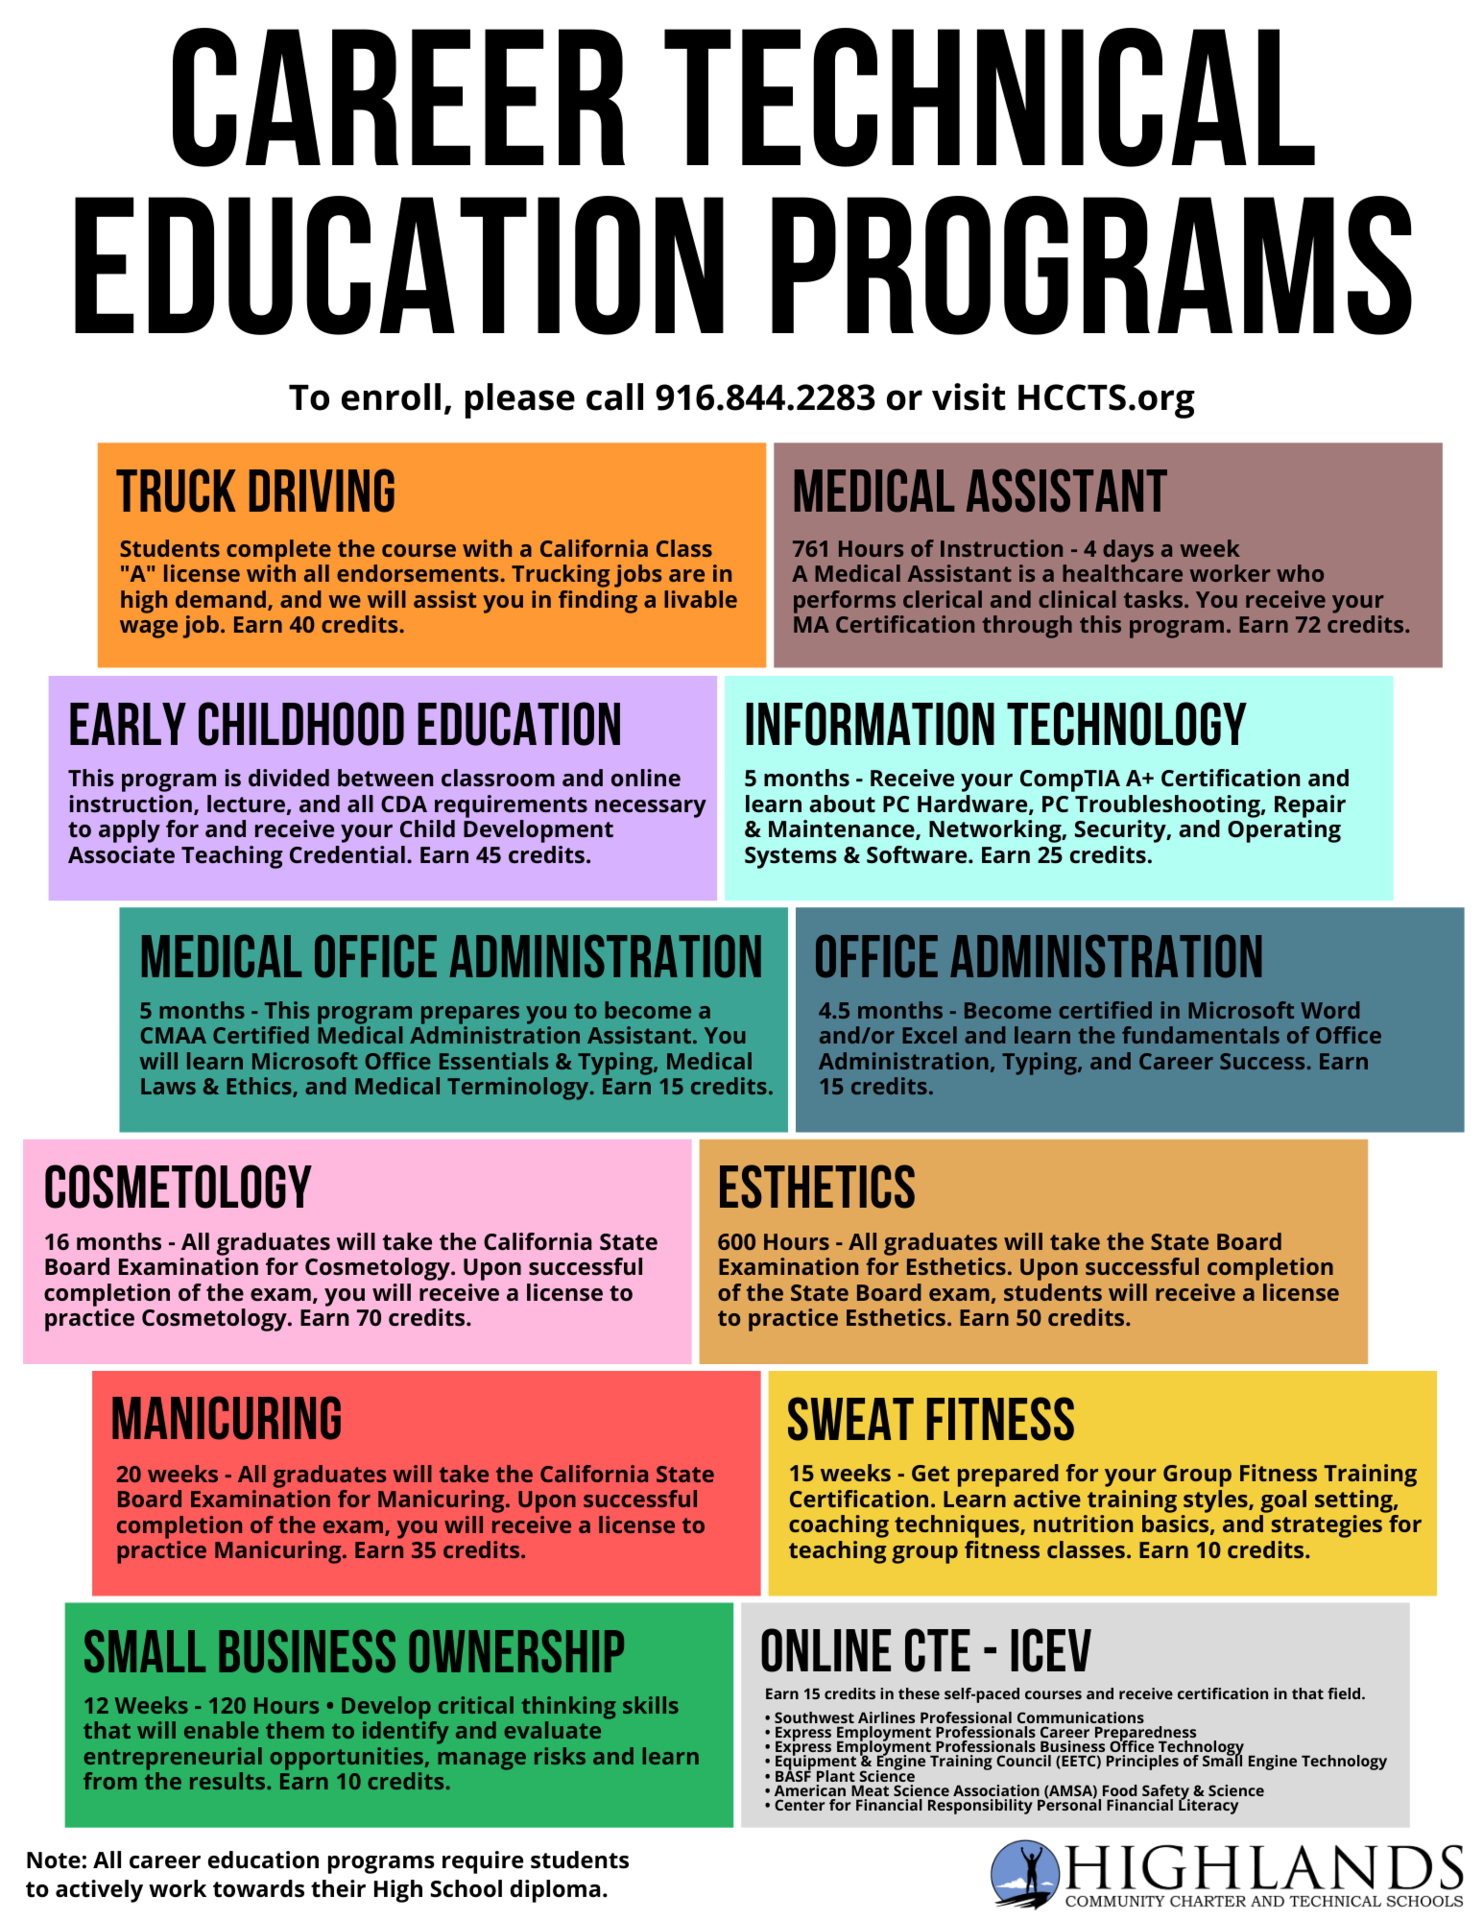 all cte programs